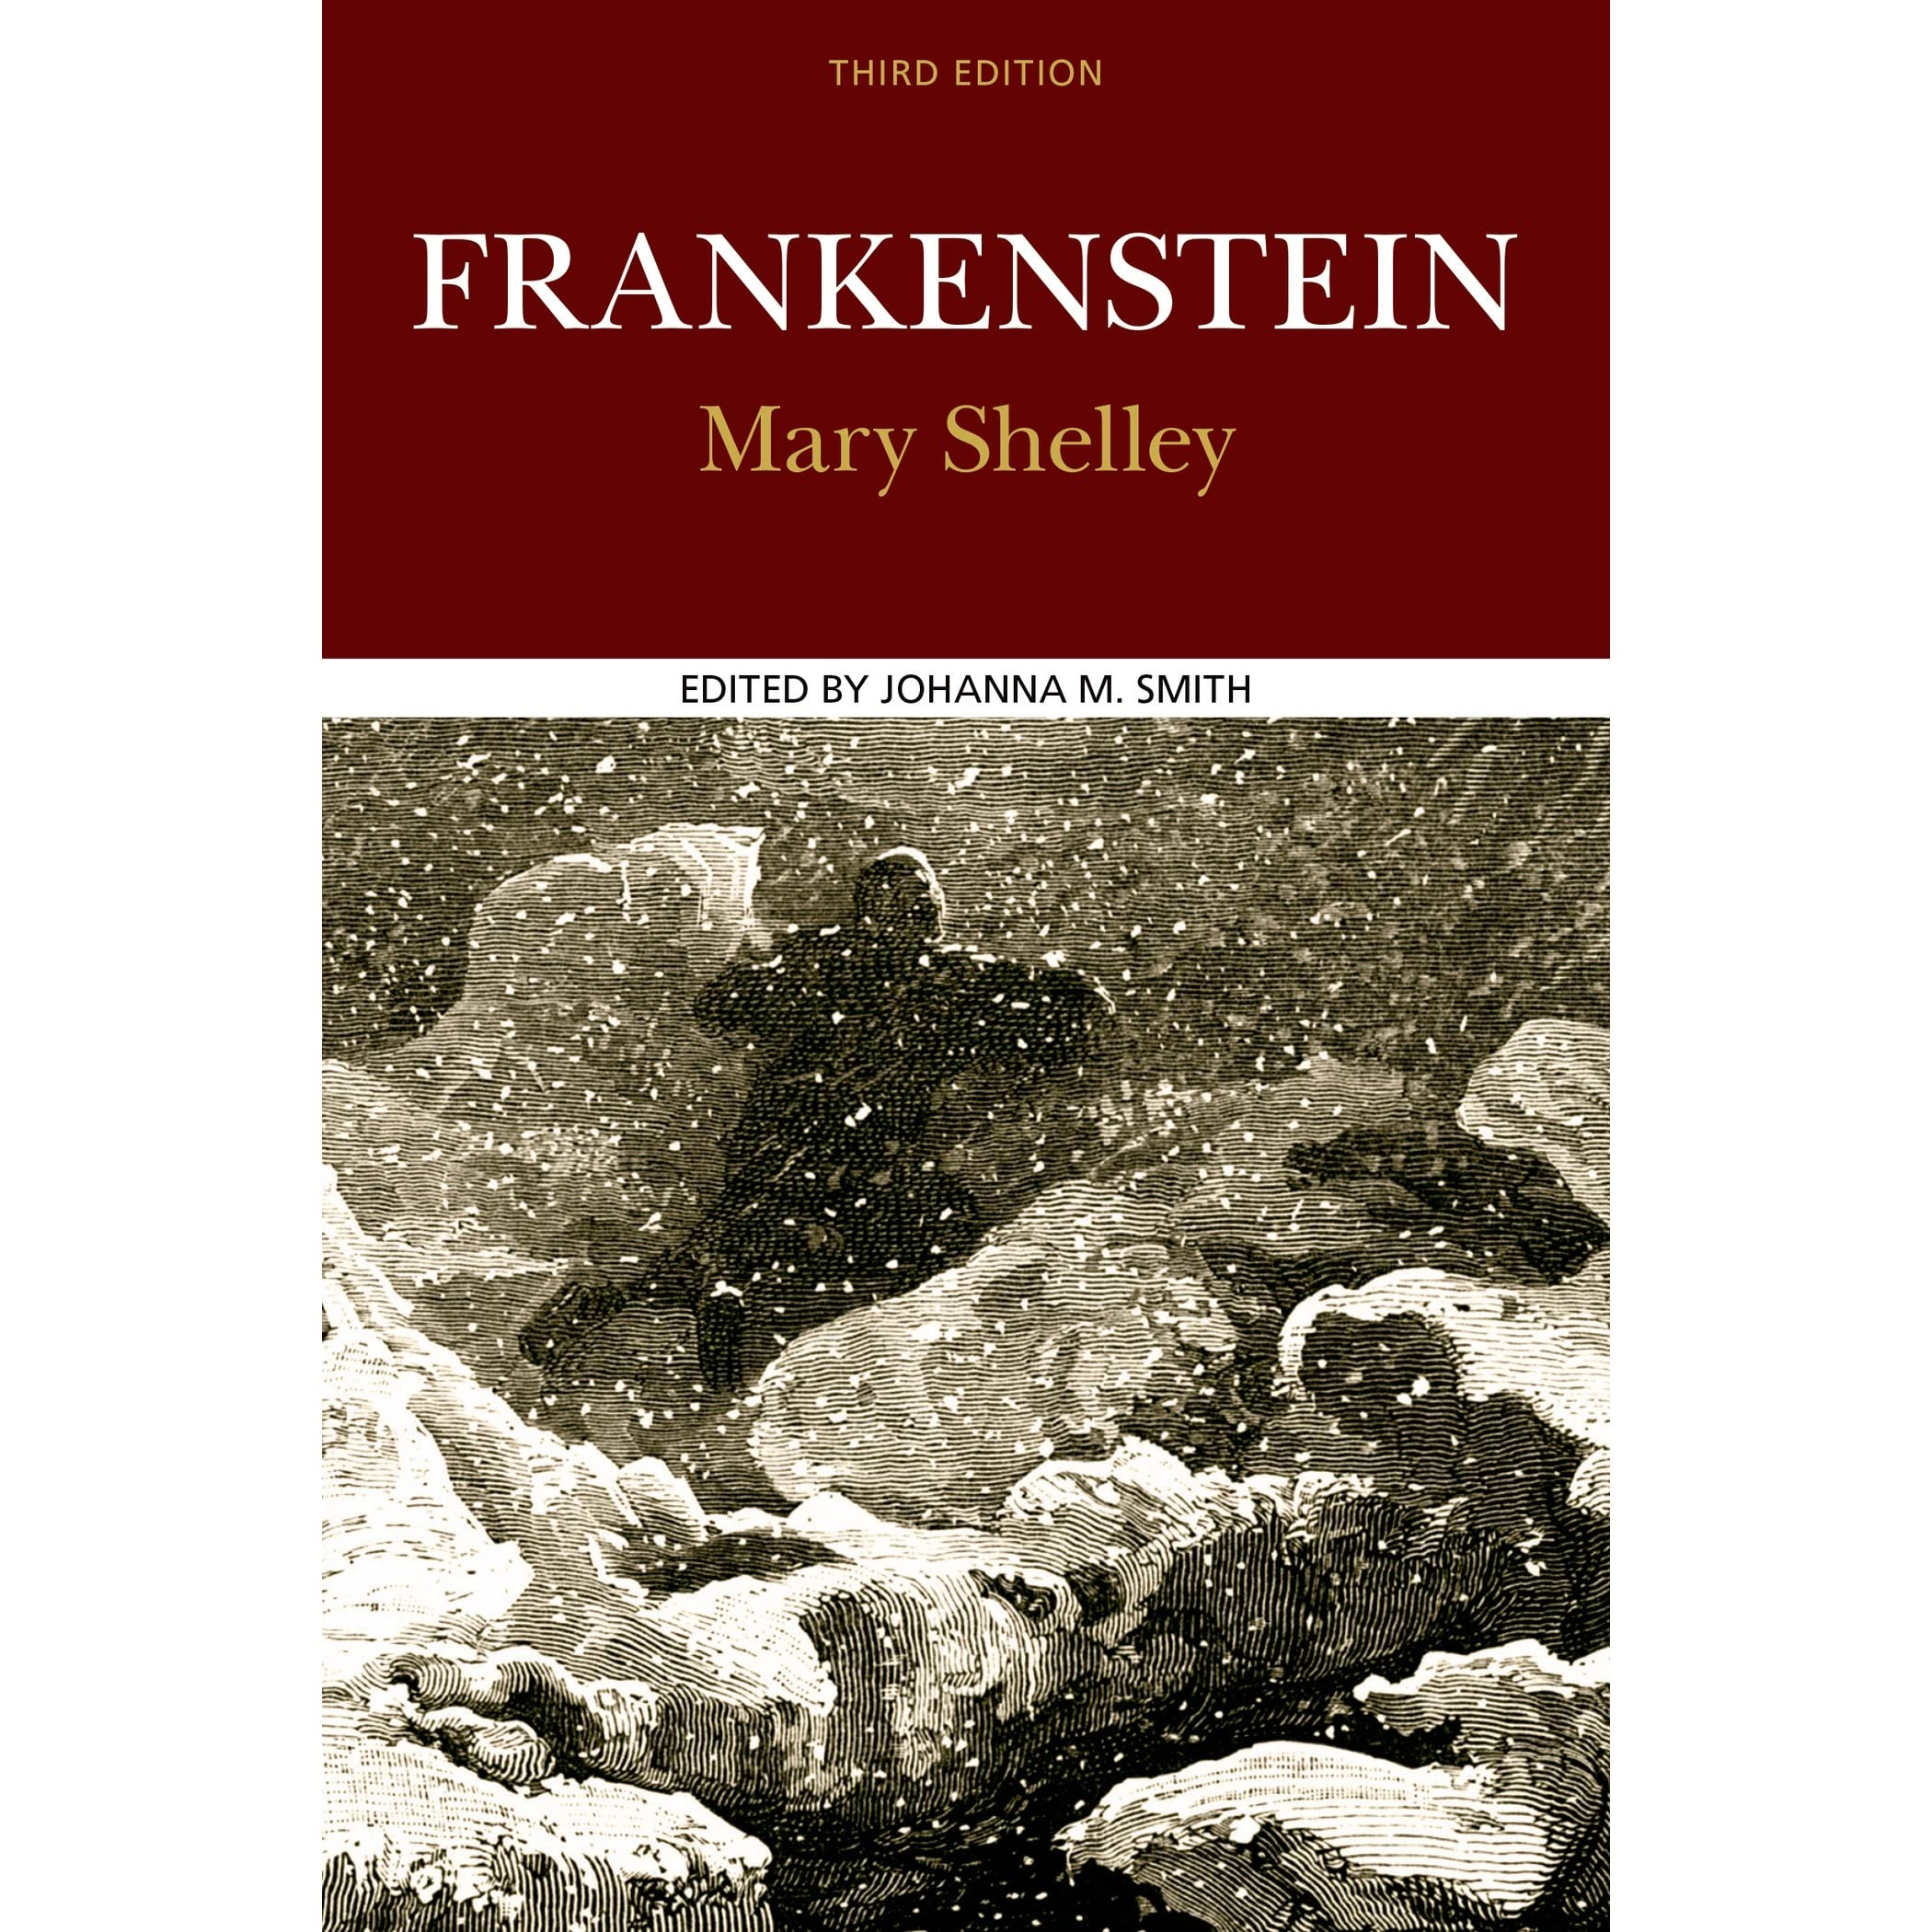 a biography and work of frankenstein by author mary shelley Author of the faery queen john keats poetical works the blake  books and  writers – includes list of frankenstein films mary shelley works  biography  with links to illustrate points made in the essay mary wollstonecraft from about com.